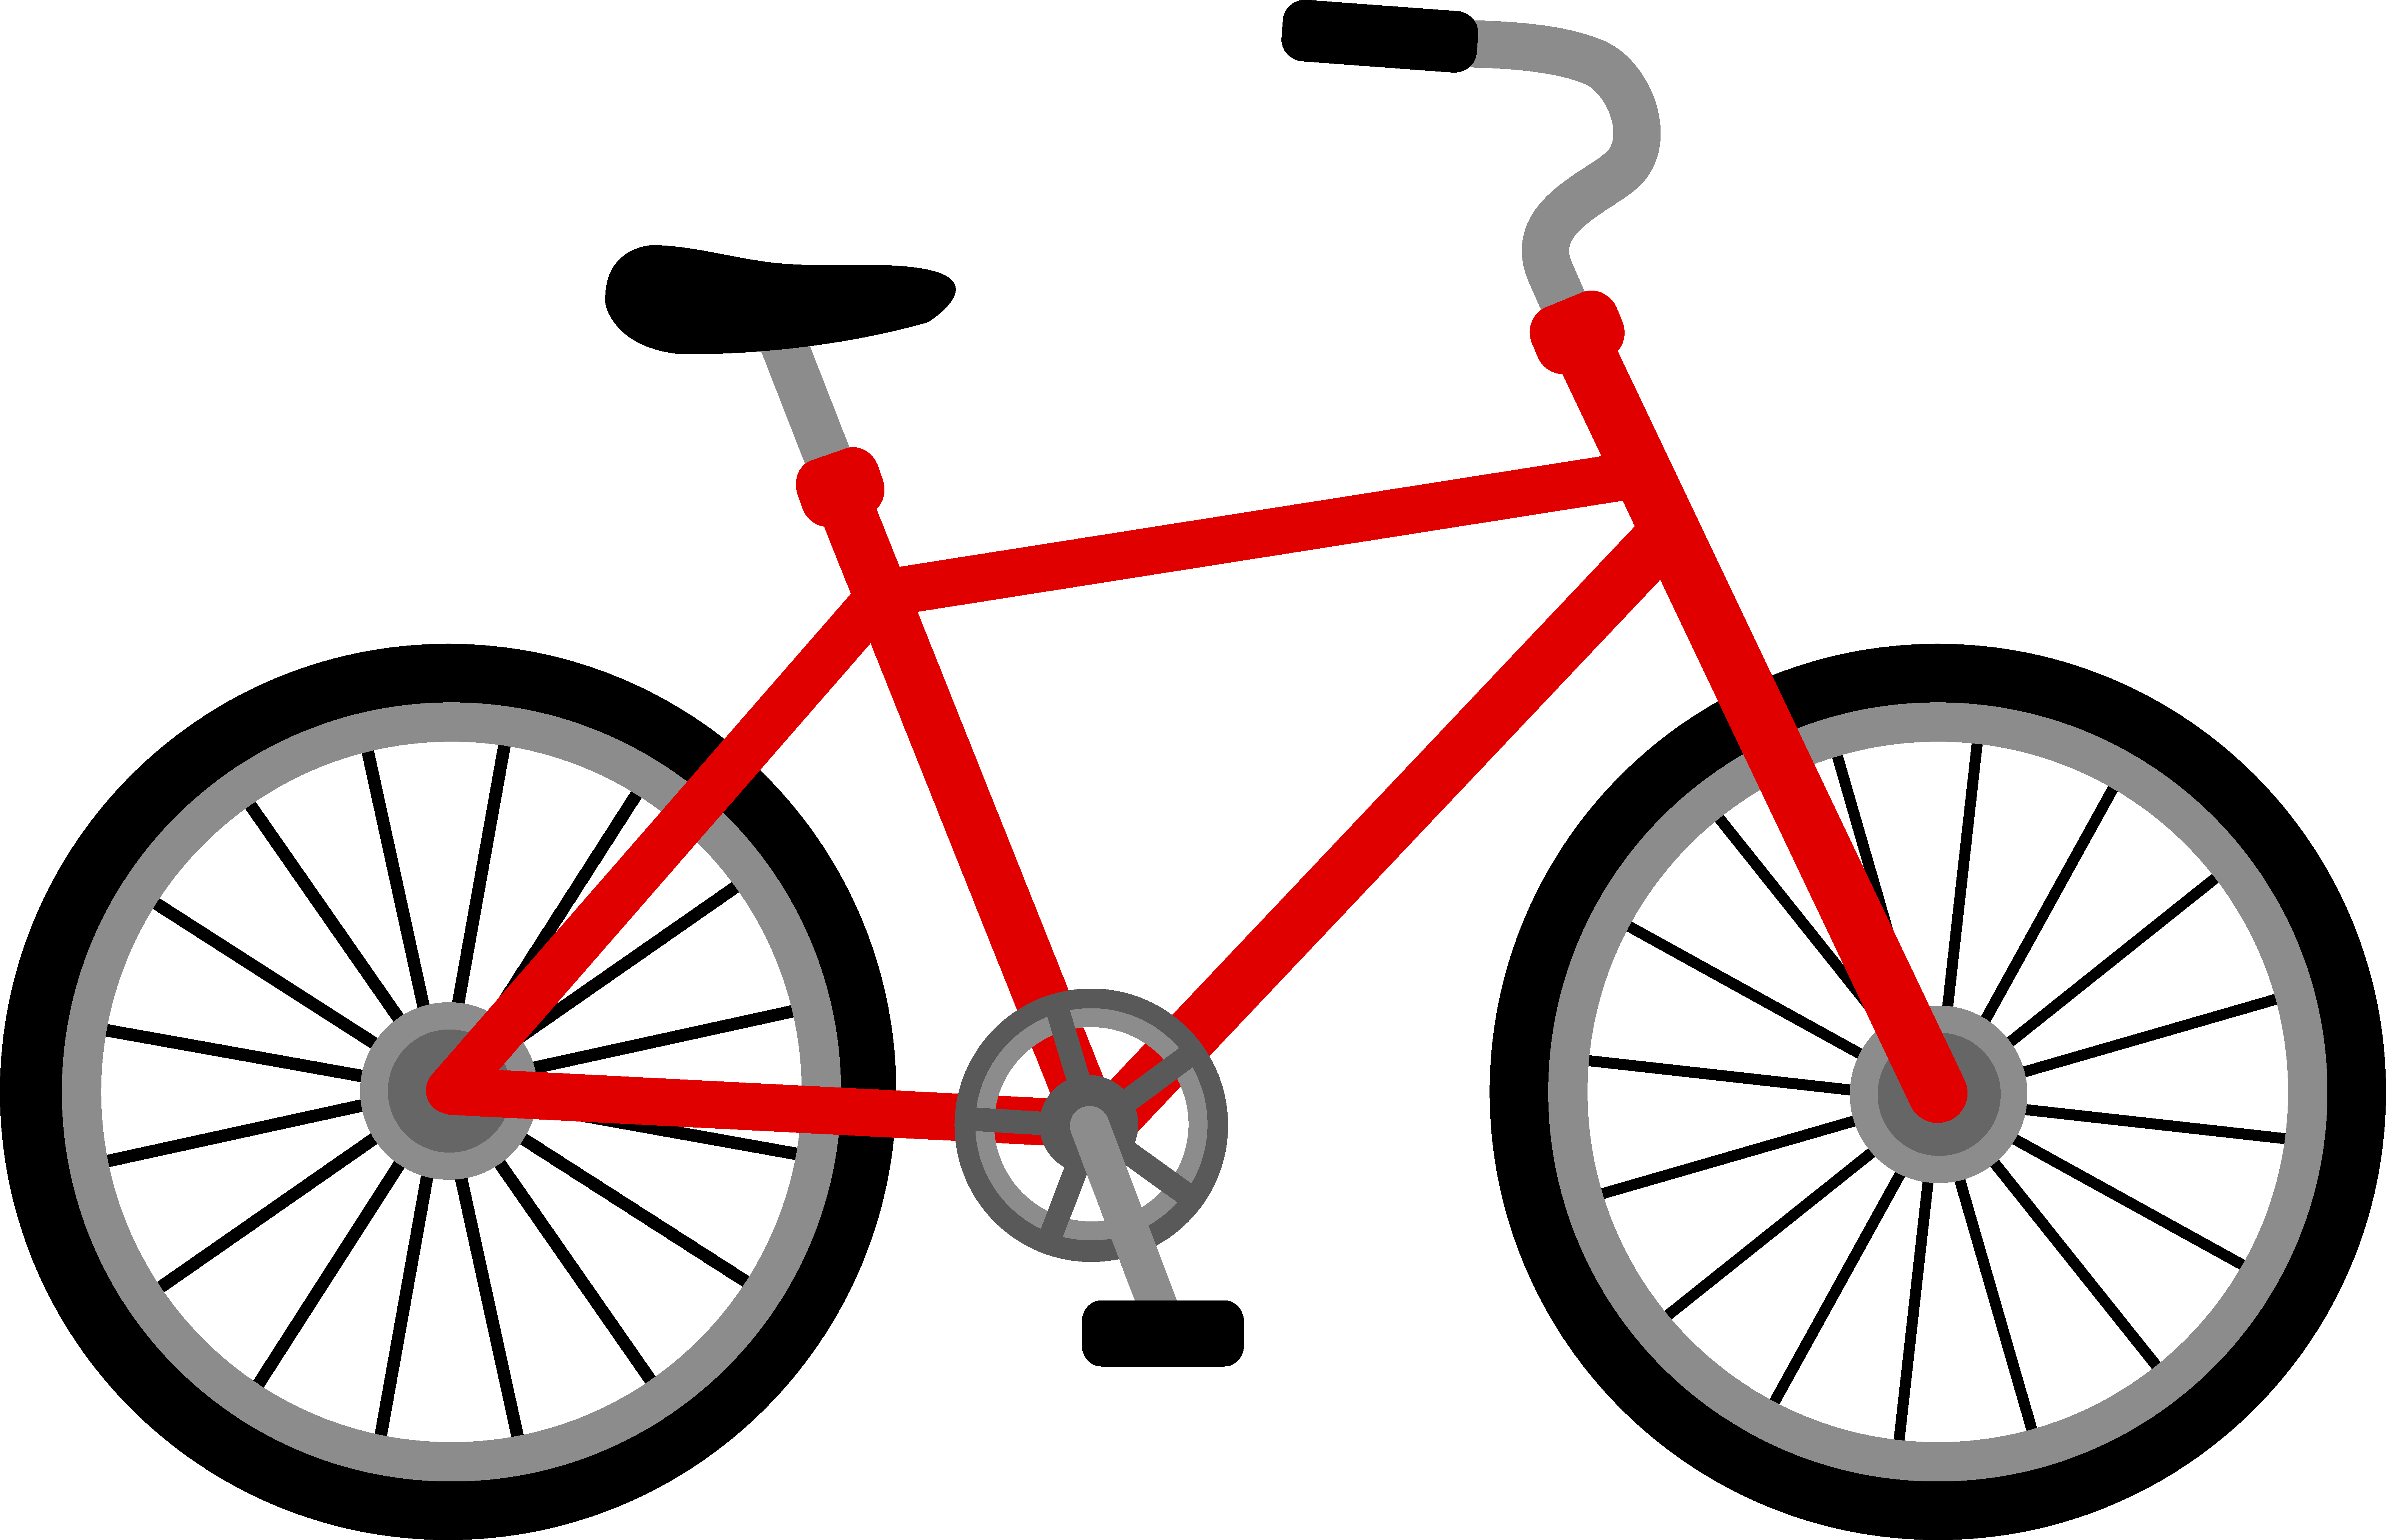 Bicycle clipart cycling. Free clip art pictures